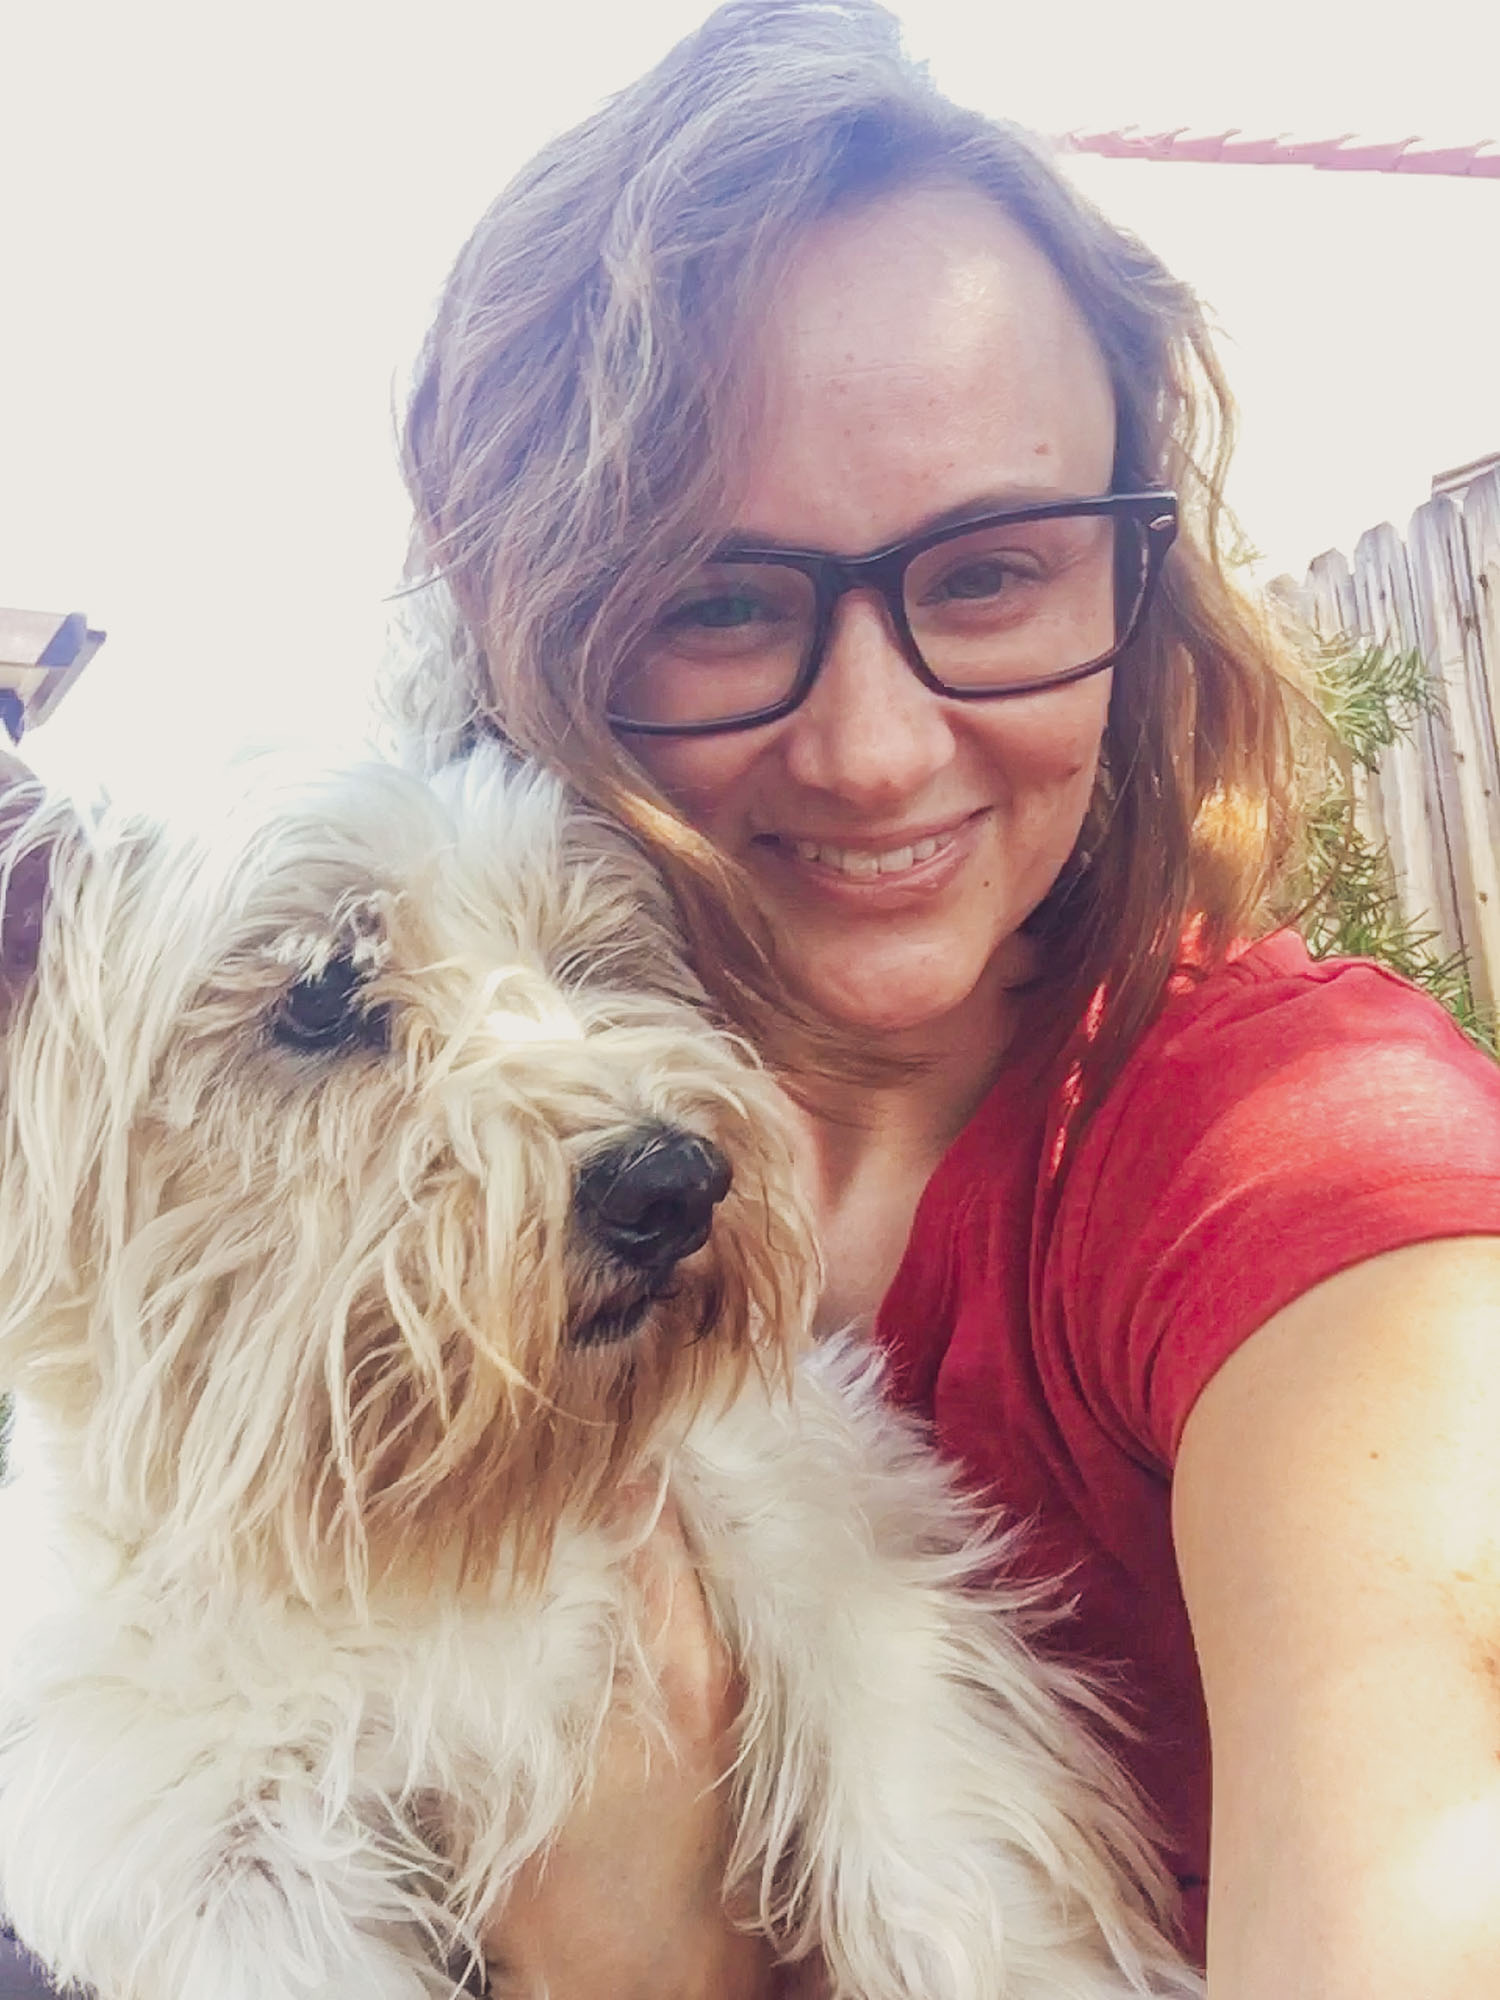 A portrait of the author, Megan, holding her dog Shay.